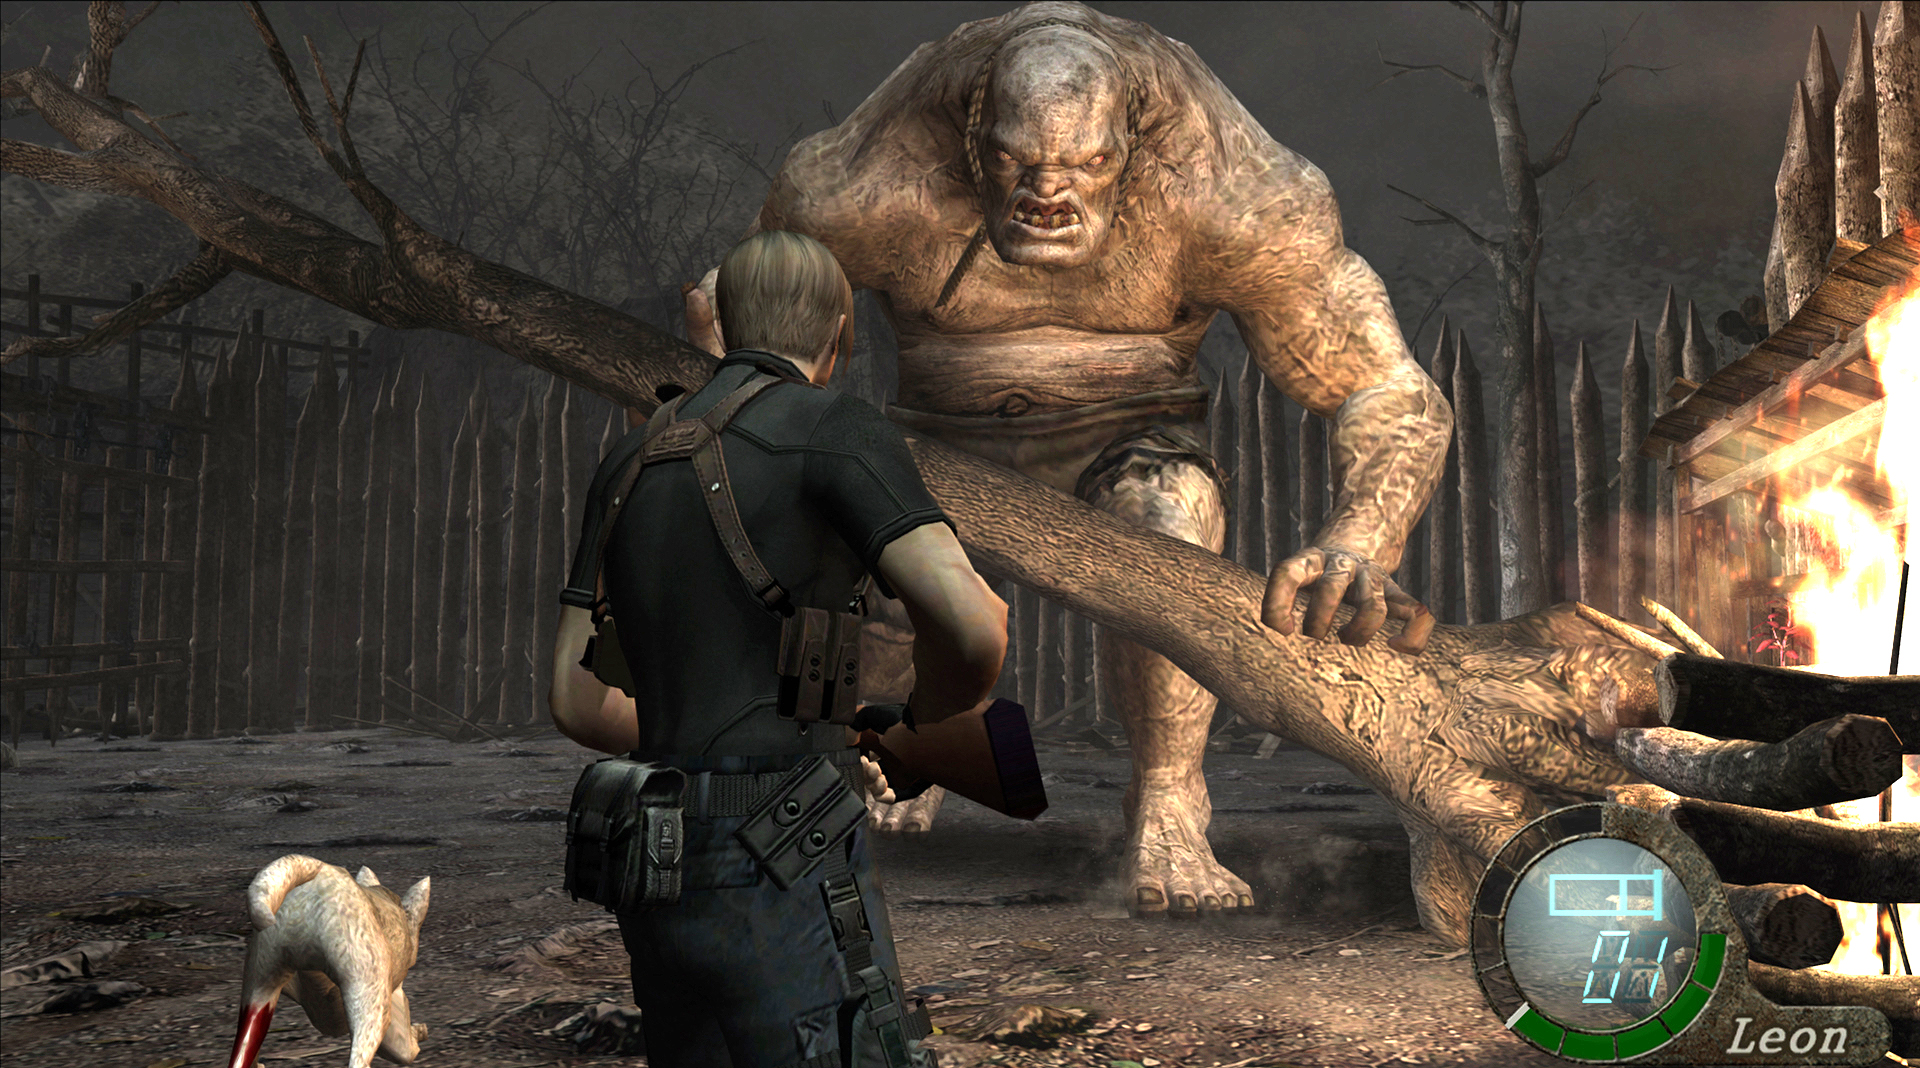 Download Resident Evil 4 Free PC Game Full Version - Free PC Games Ever